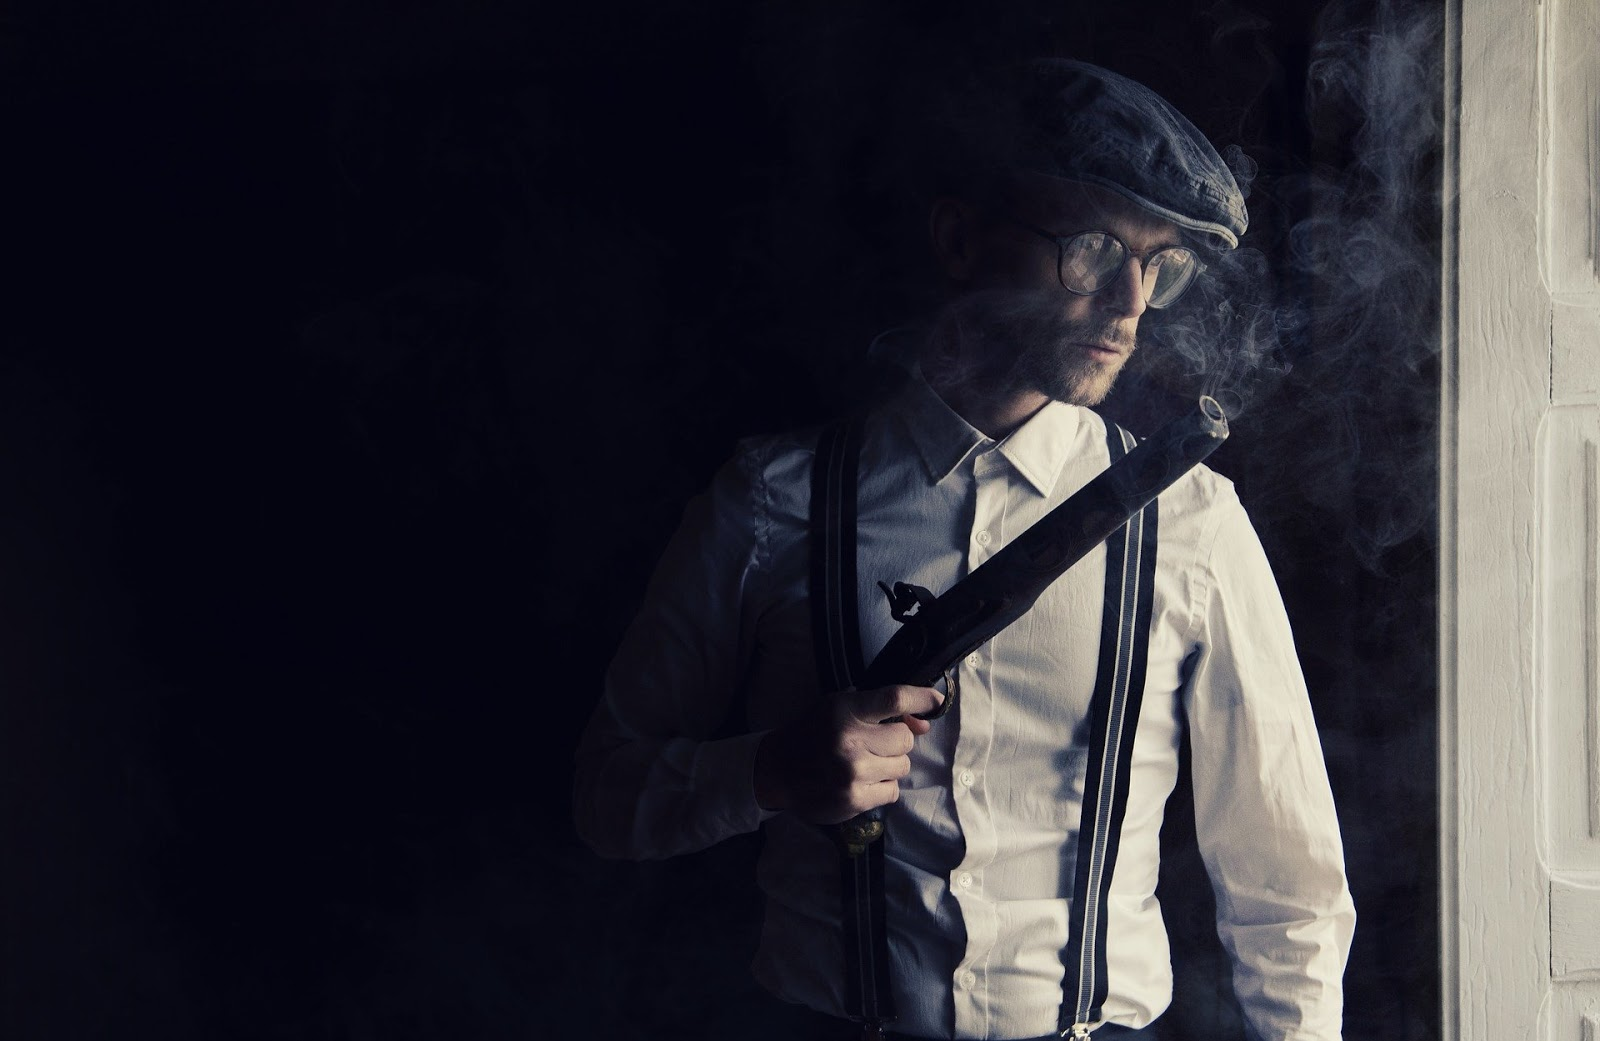 Mobster looking out window while carrying smoking gun to illustrate blog post about mob warfare